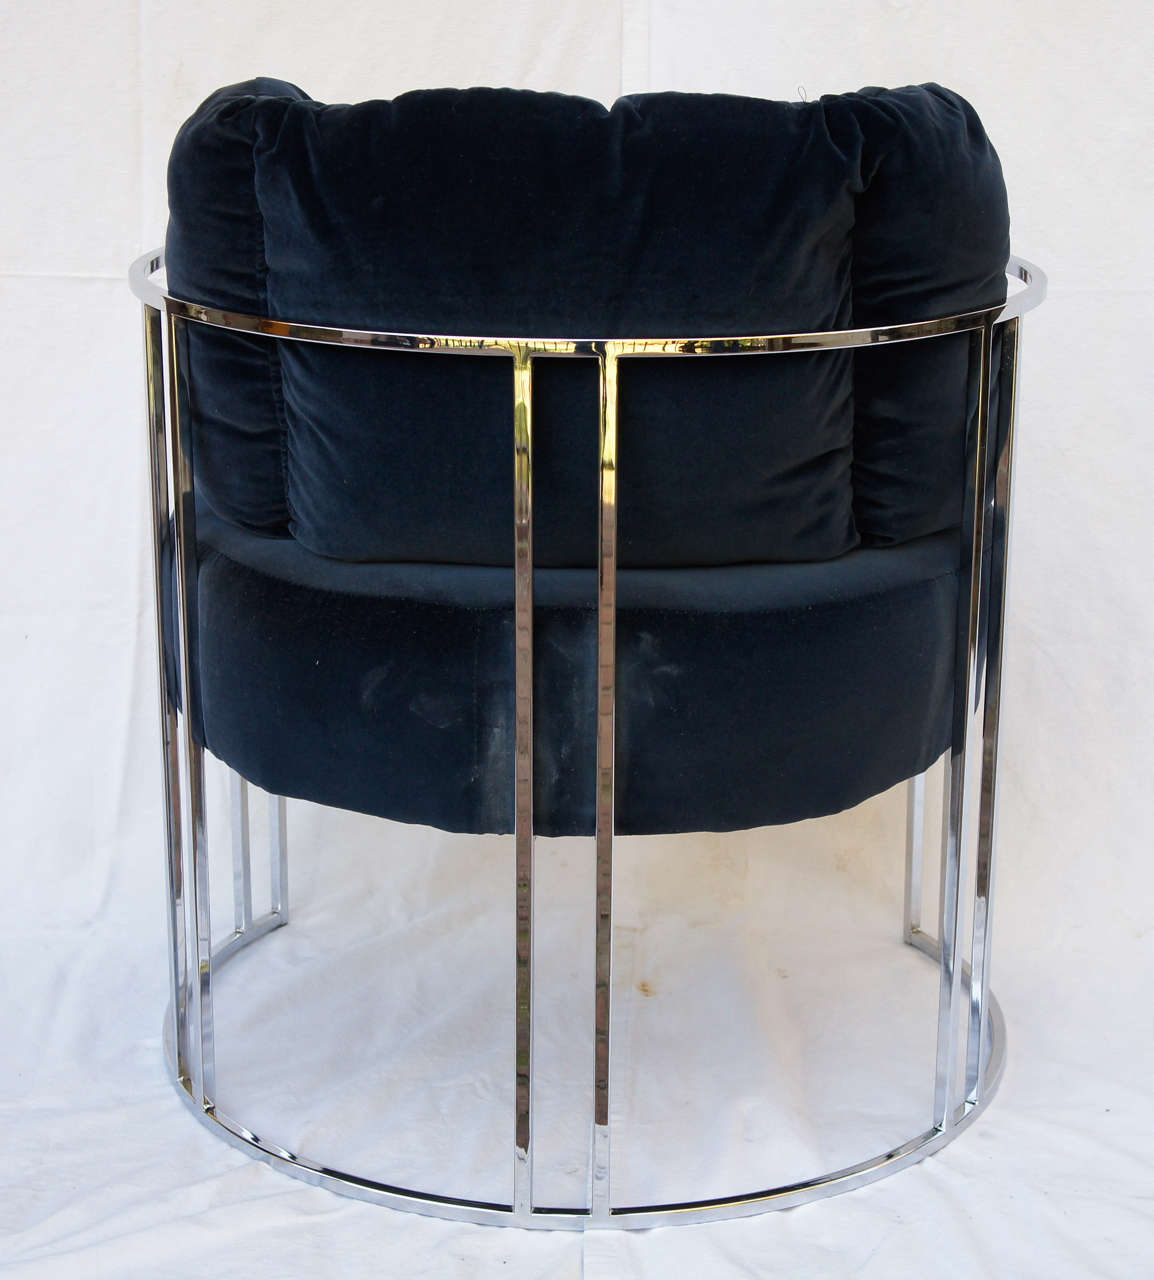 Pair of 70s chrome deco style chairs by milo baughman image 6 for Furniture 70s style